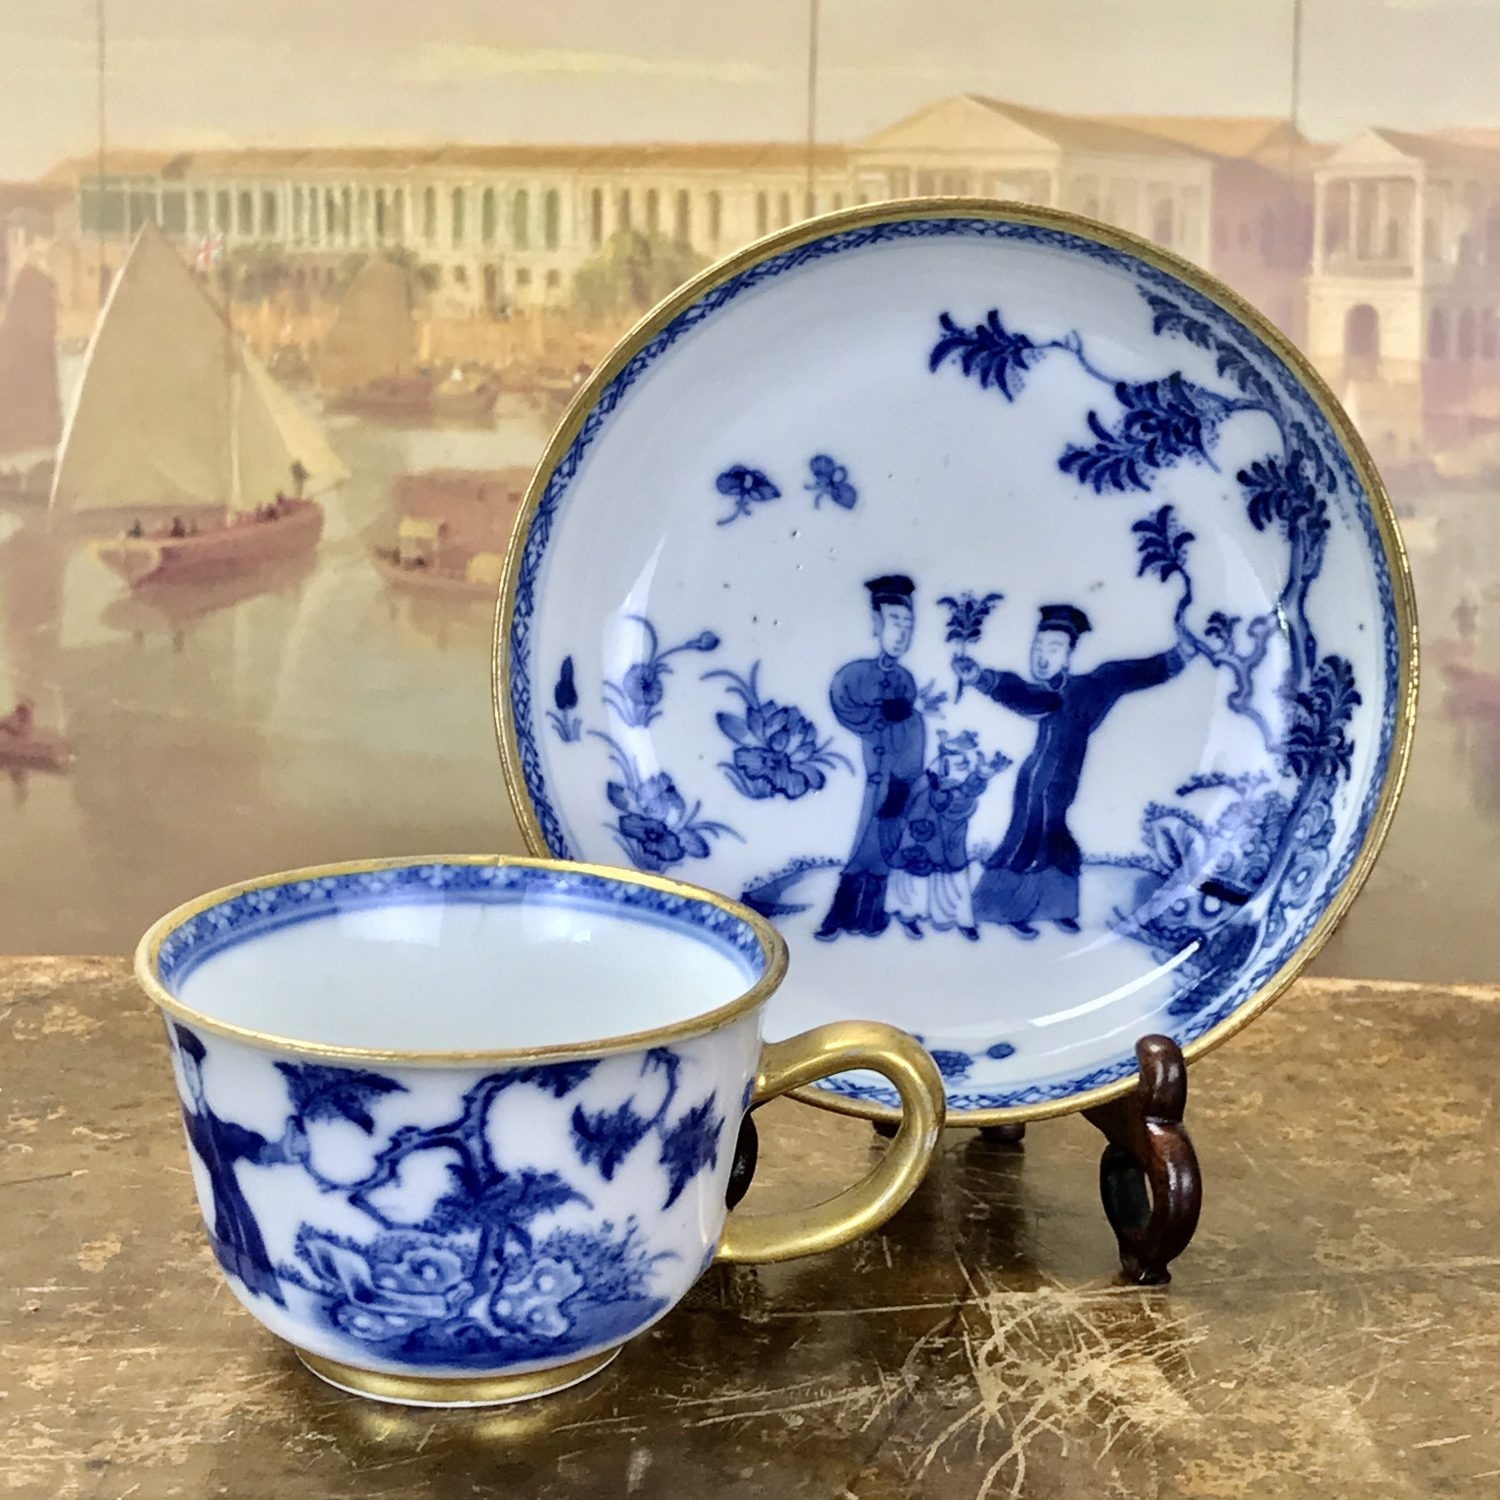 Unusual C18th Chinese Export Porcelain Tea Cup & Saucer.